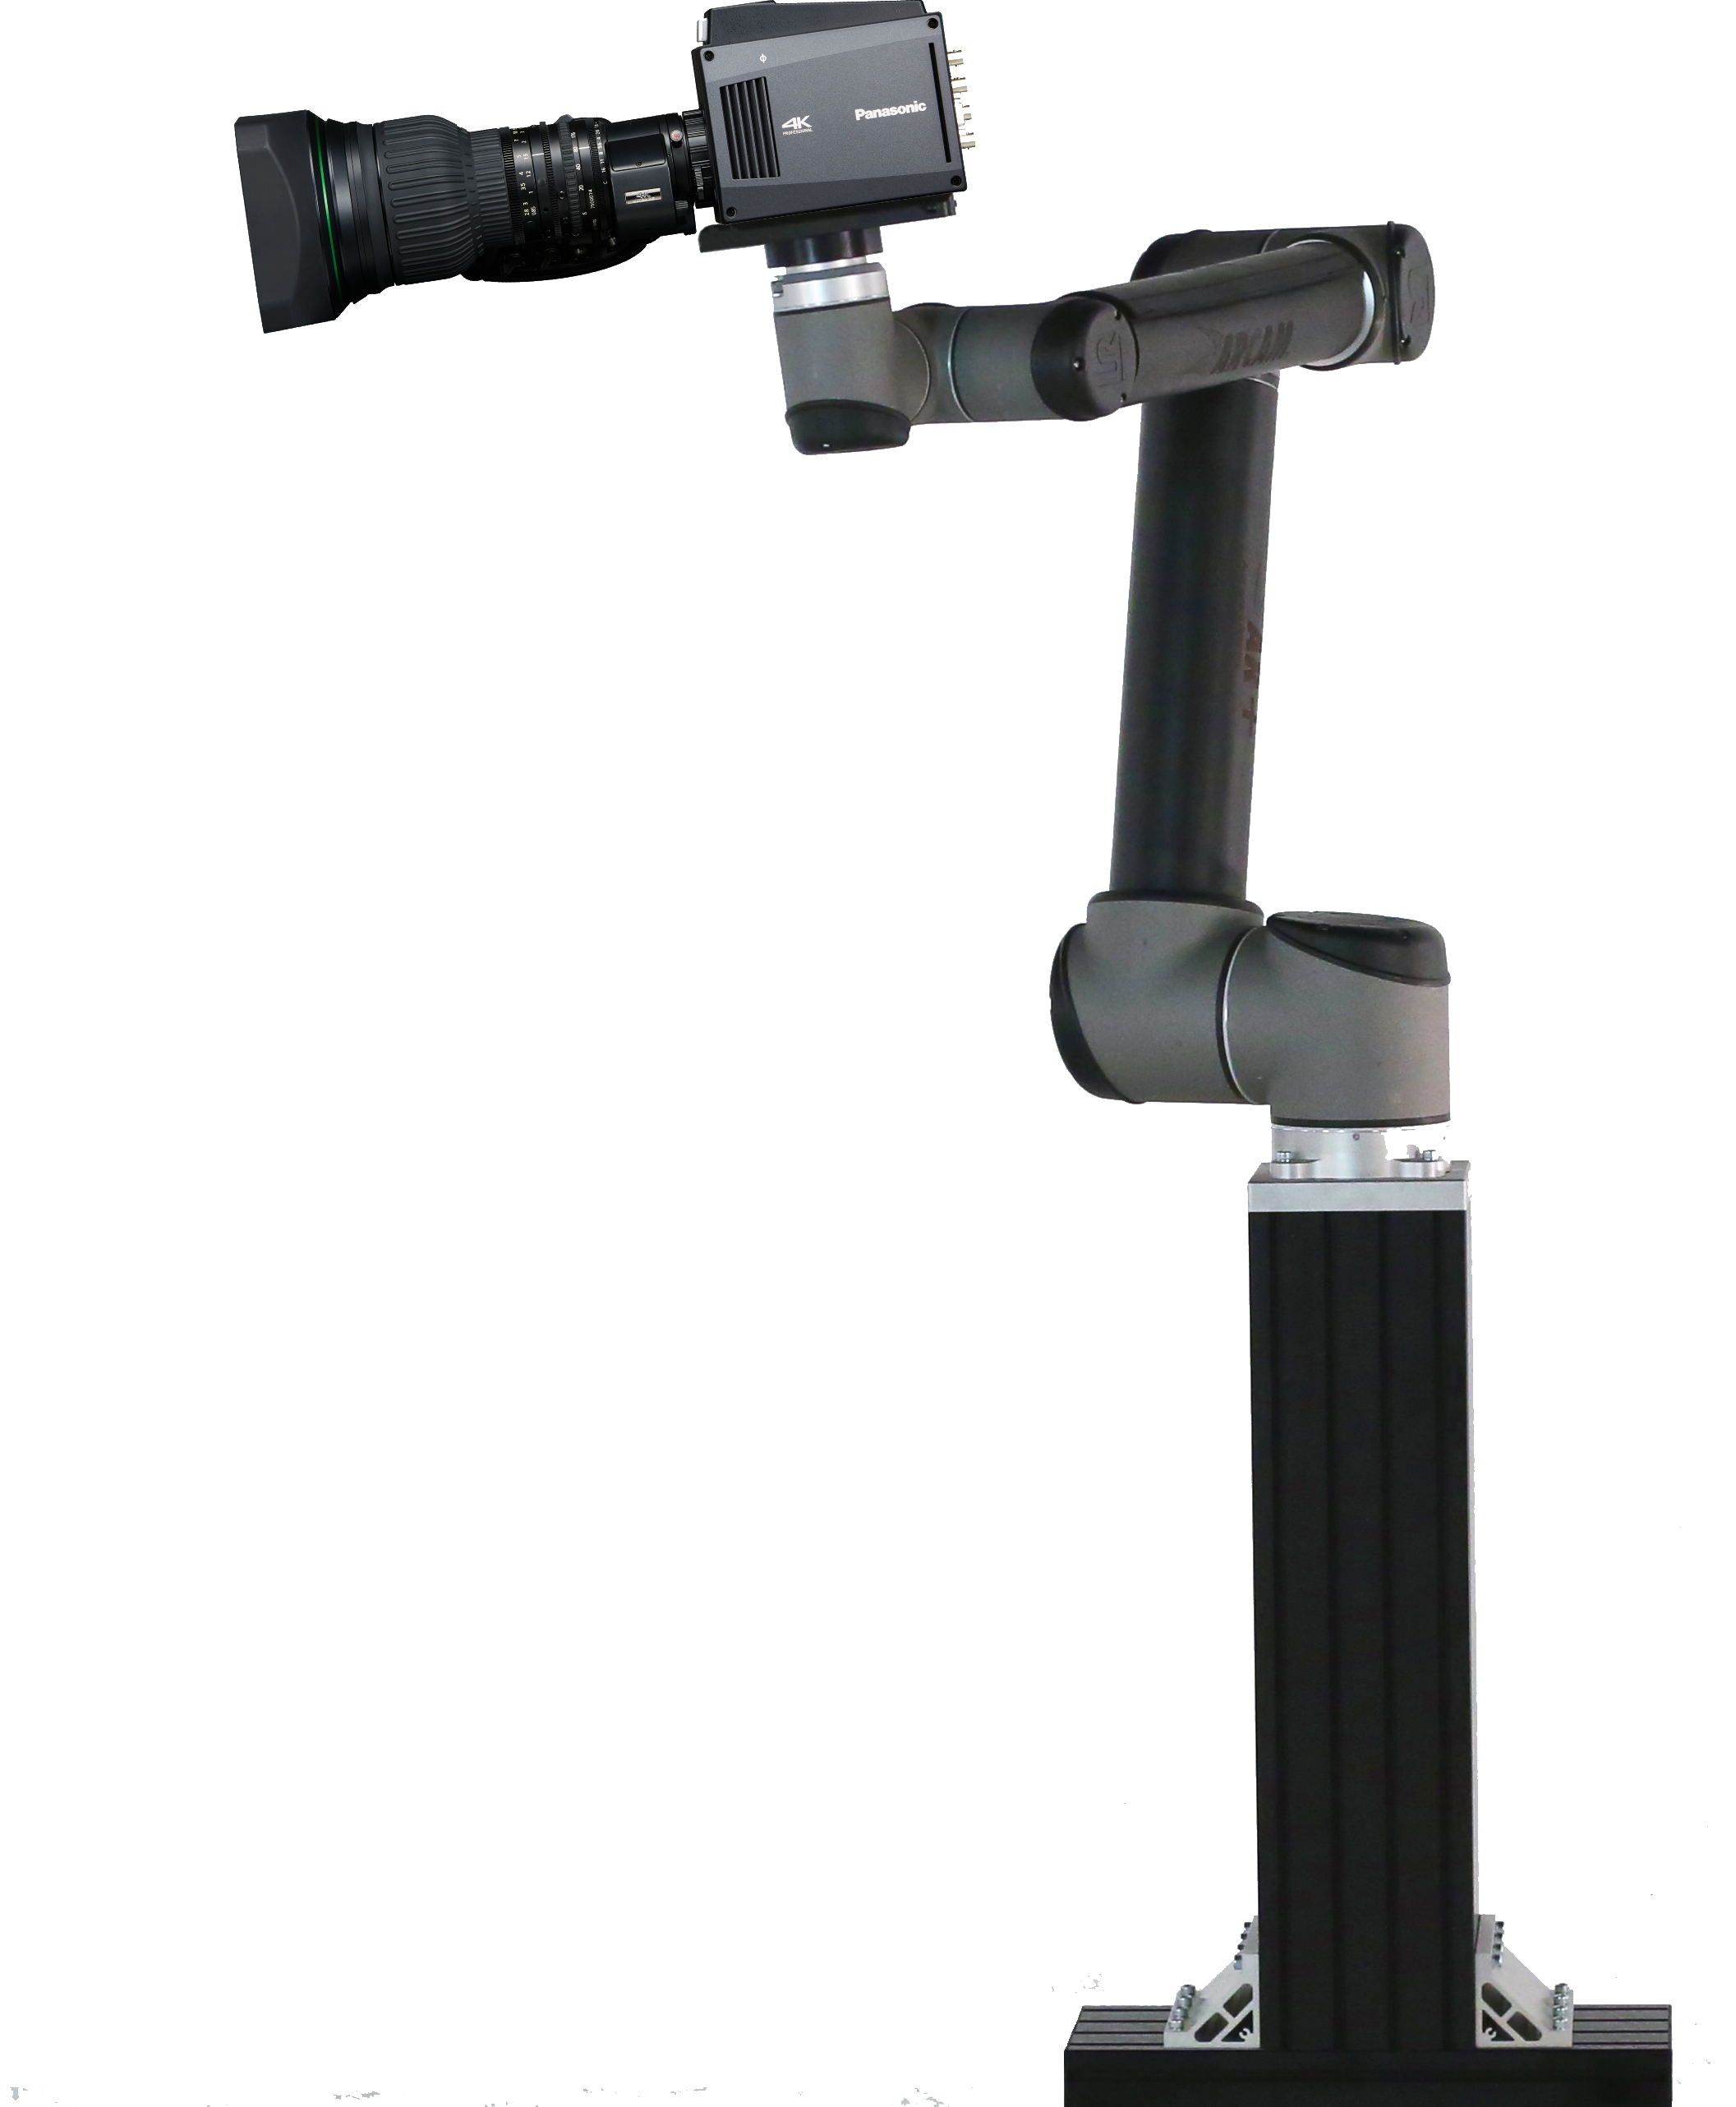 ARCAM Robotic Arm